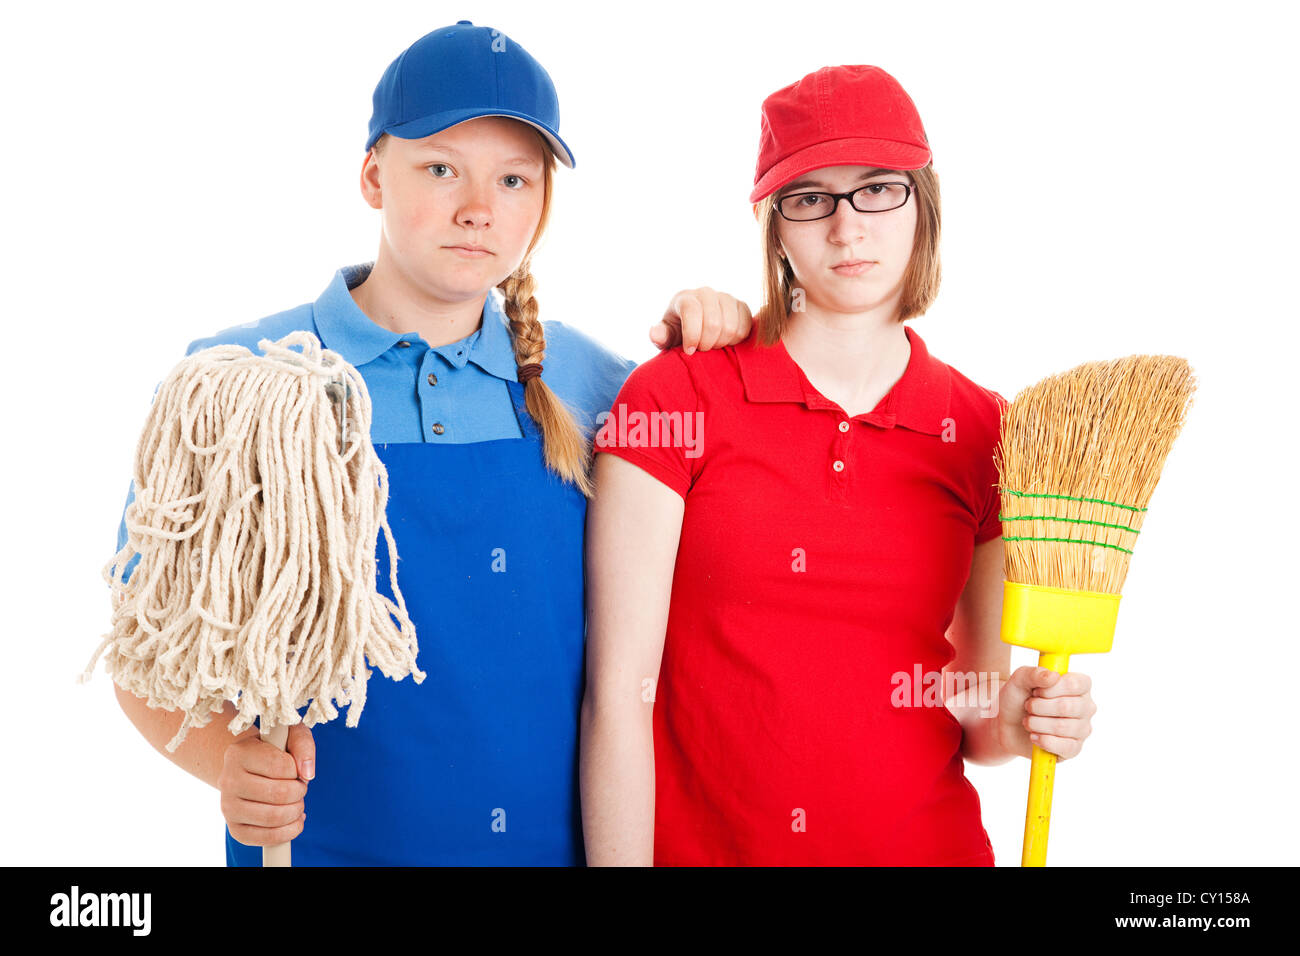 Two serious looking teenage girls, dressed in uniforms for menial jobs and holding a broom and mop. Isolated on - Stock Image